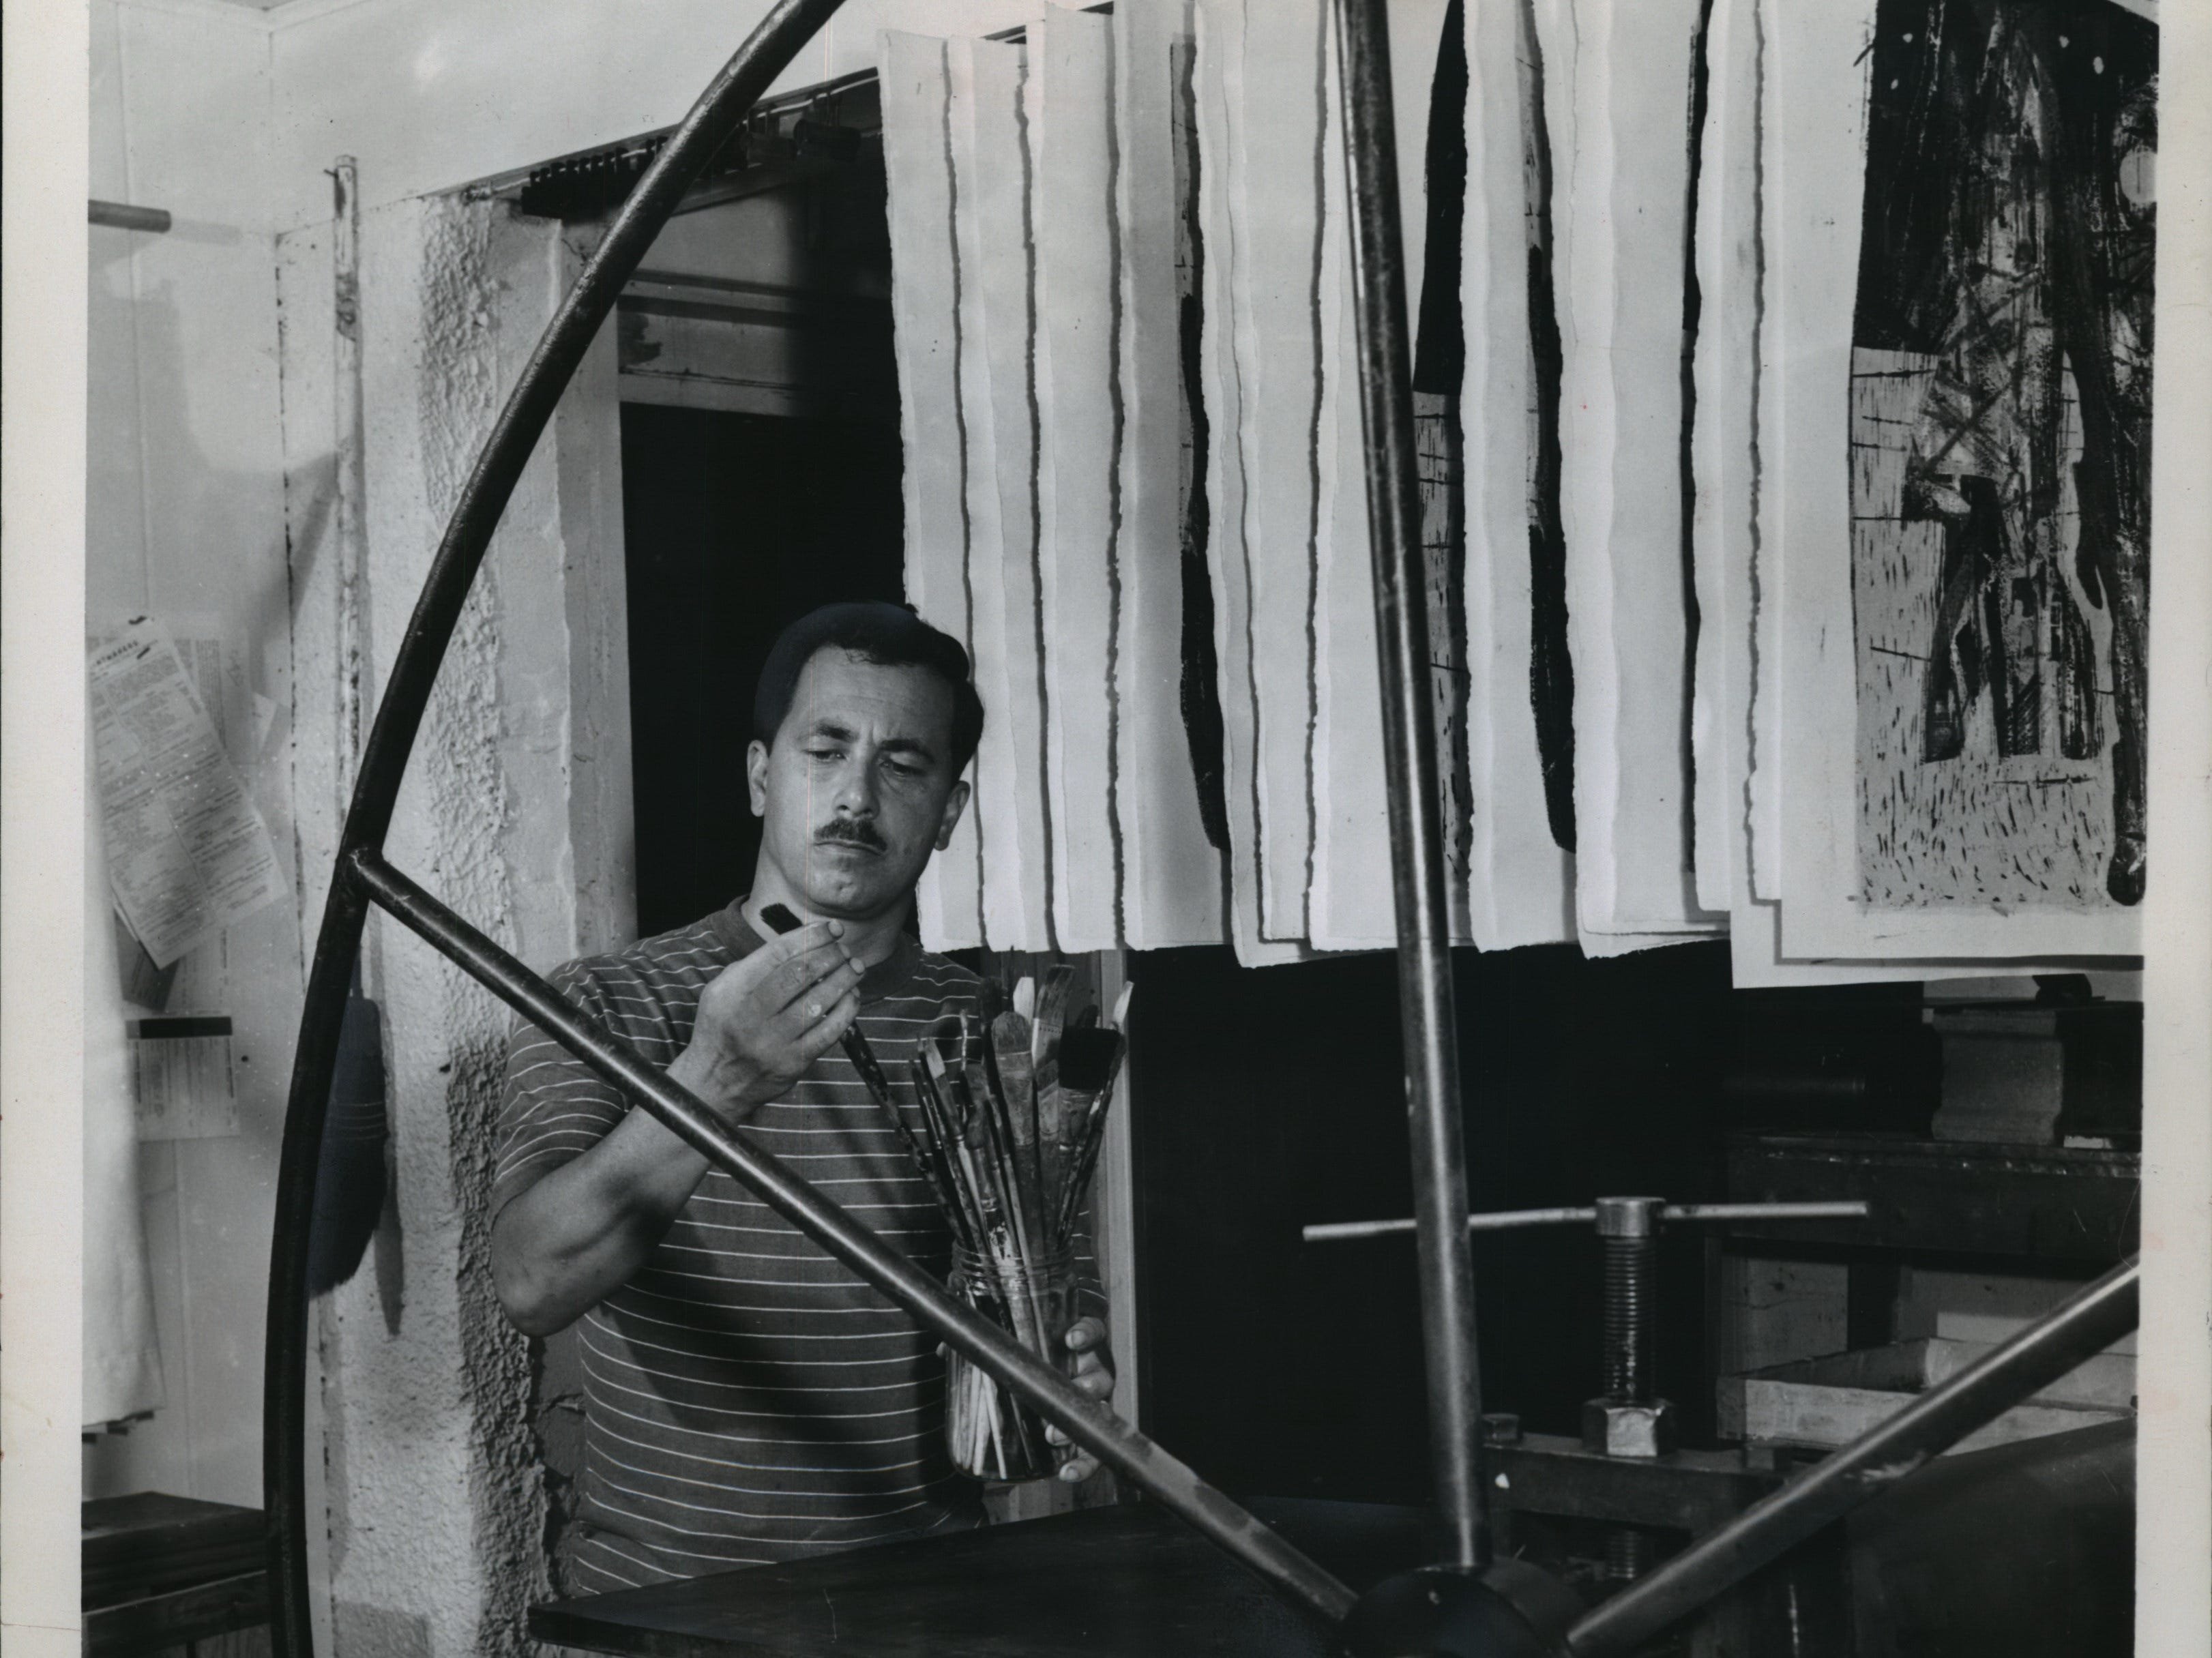 1960: In his Madison studio, Warrington Colescott stands behind and looks surrounded by the large wheel of his intaglio printing press.